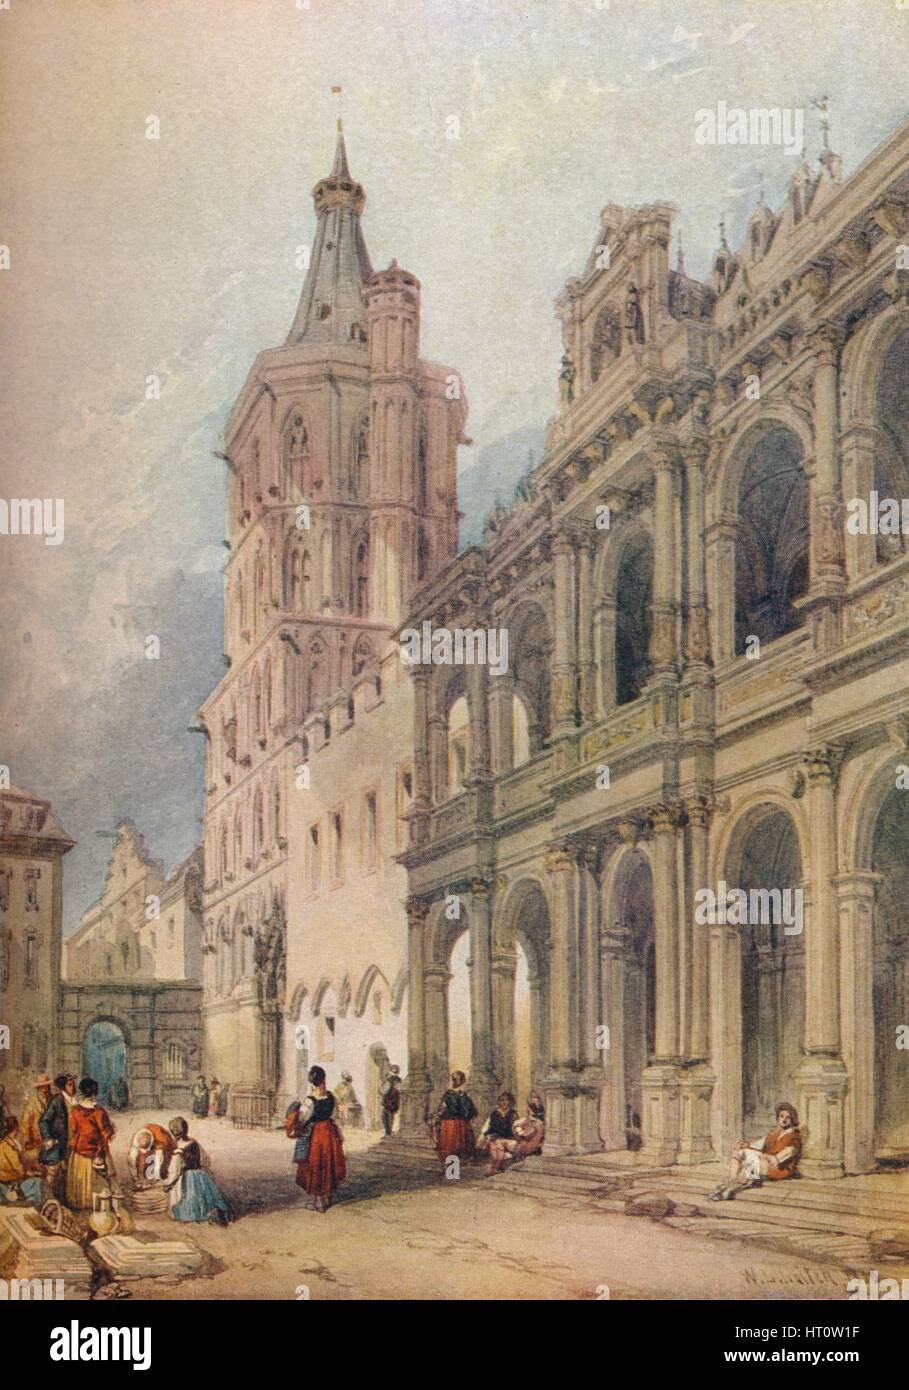 'Town Hall, Cologne', c1841. Artist: William Leighton Leitch. - Stock Image